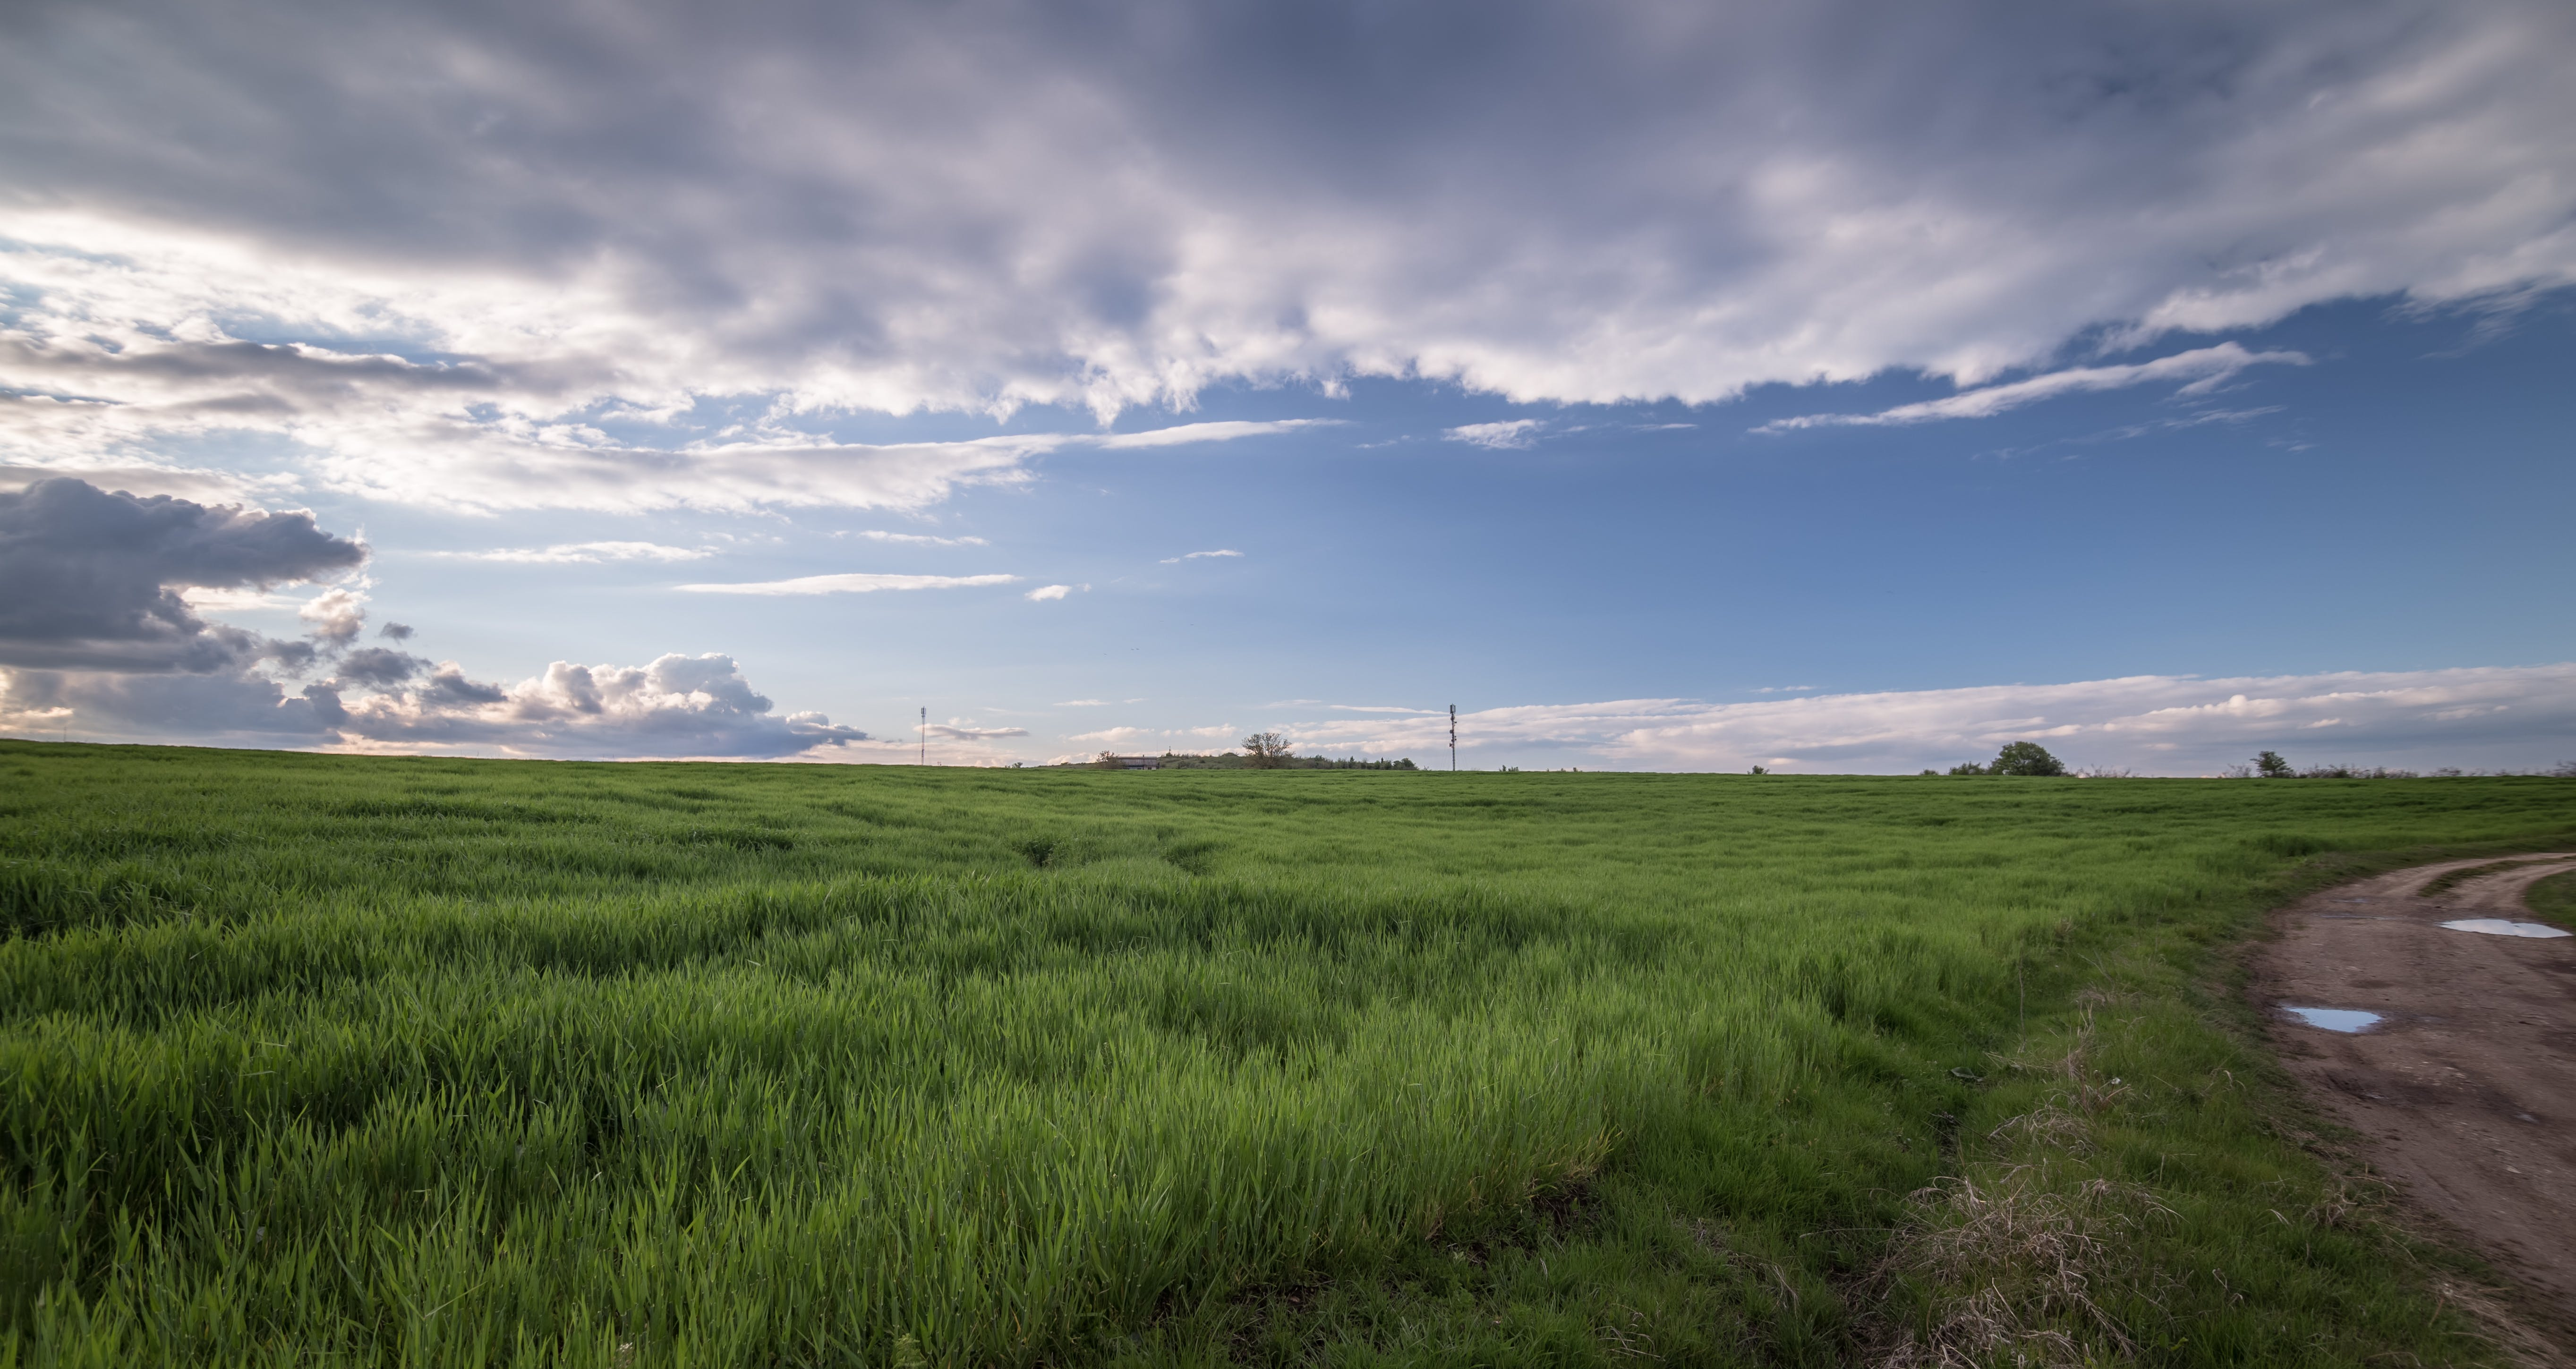 agriculture, clouds, country